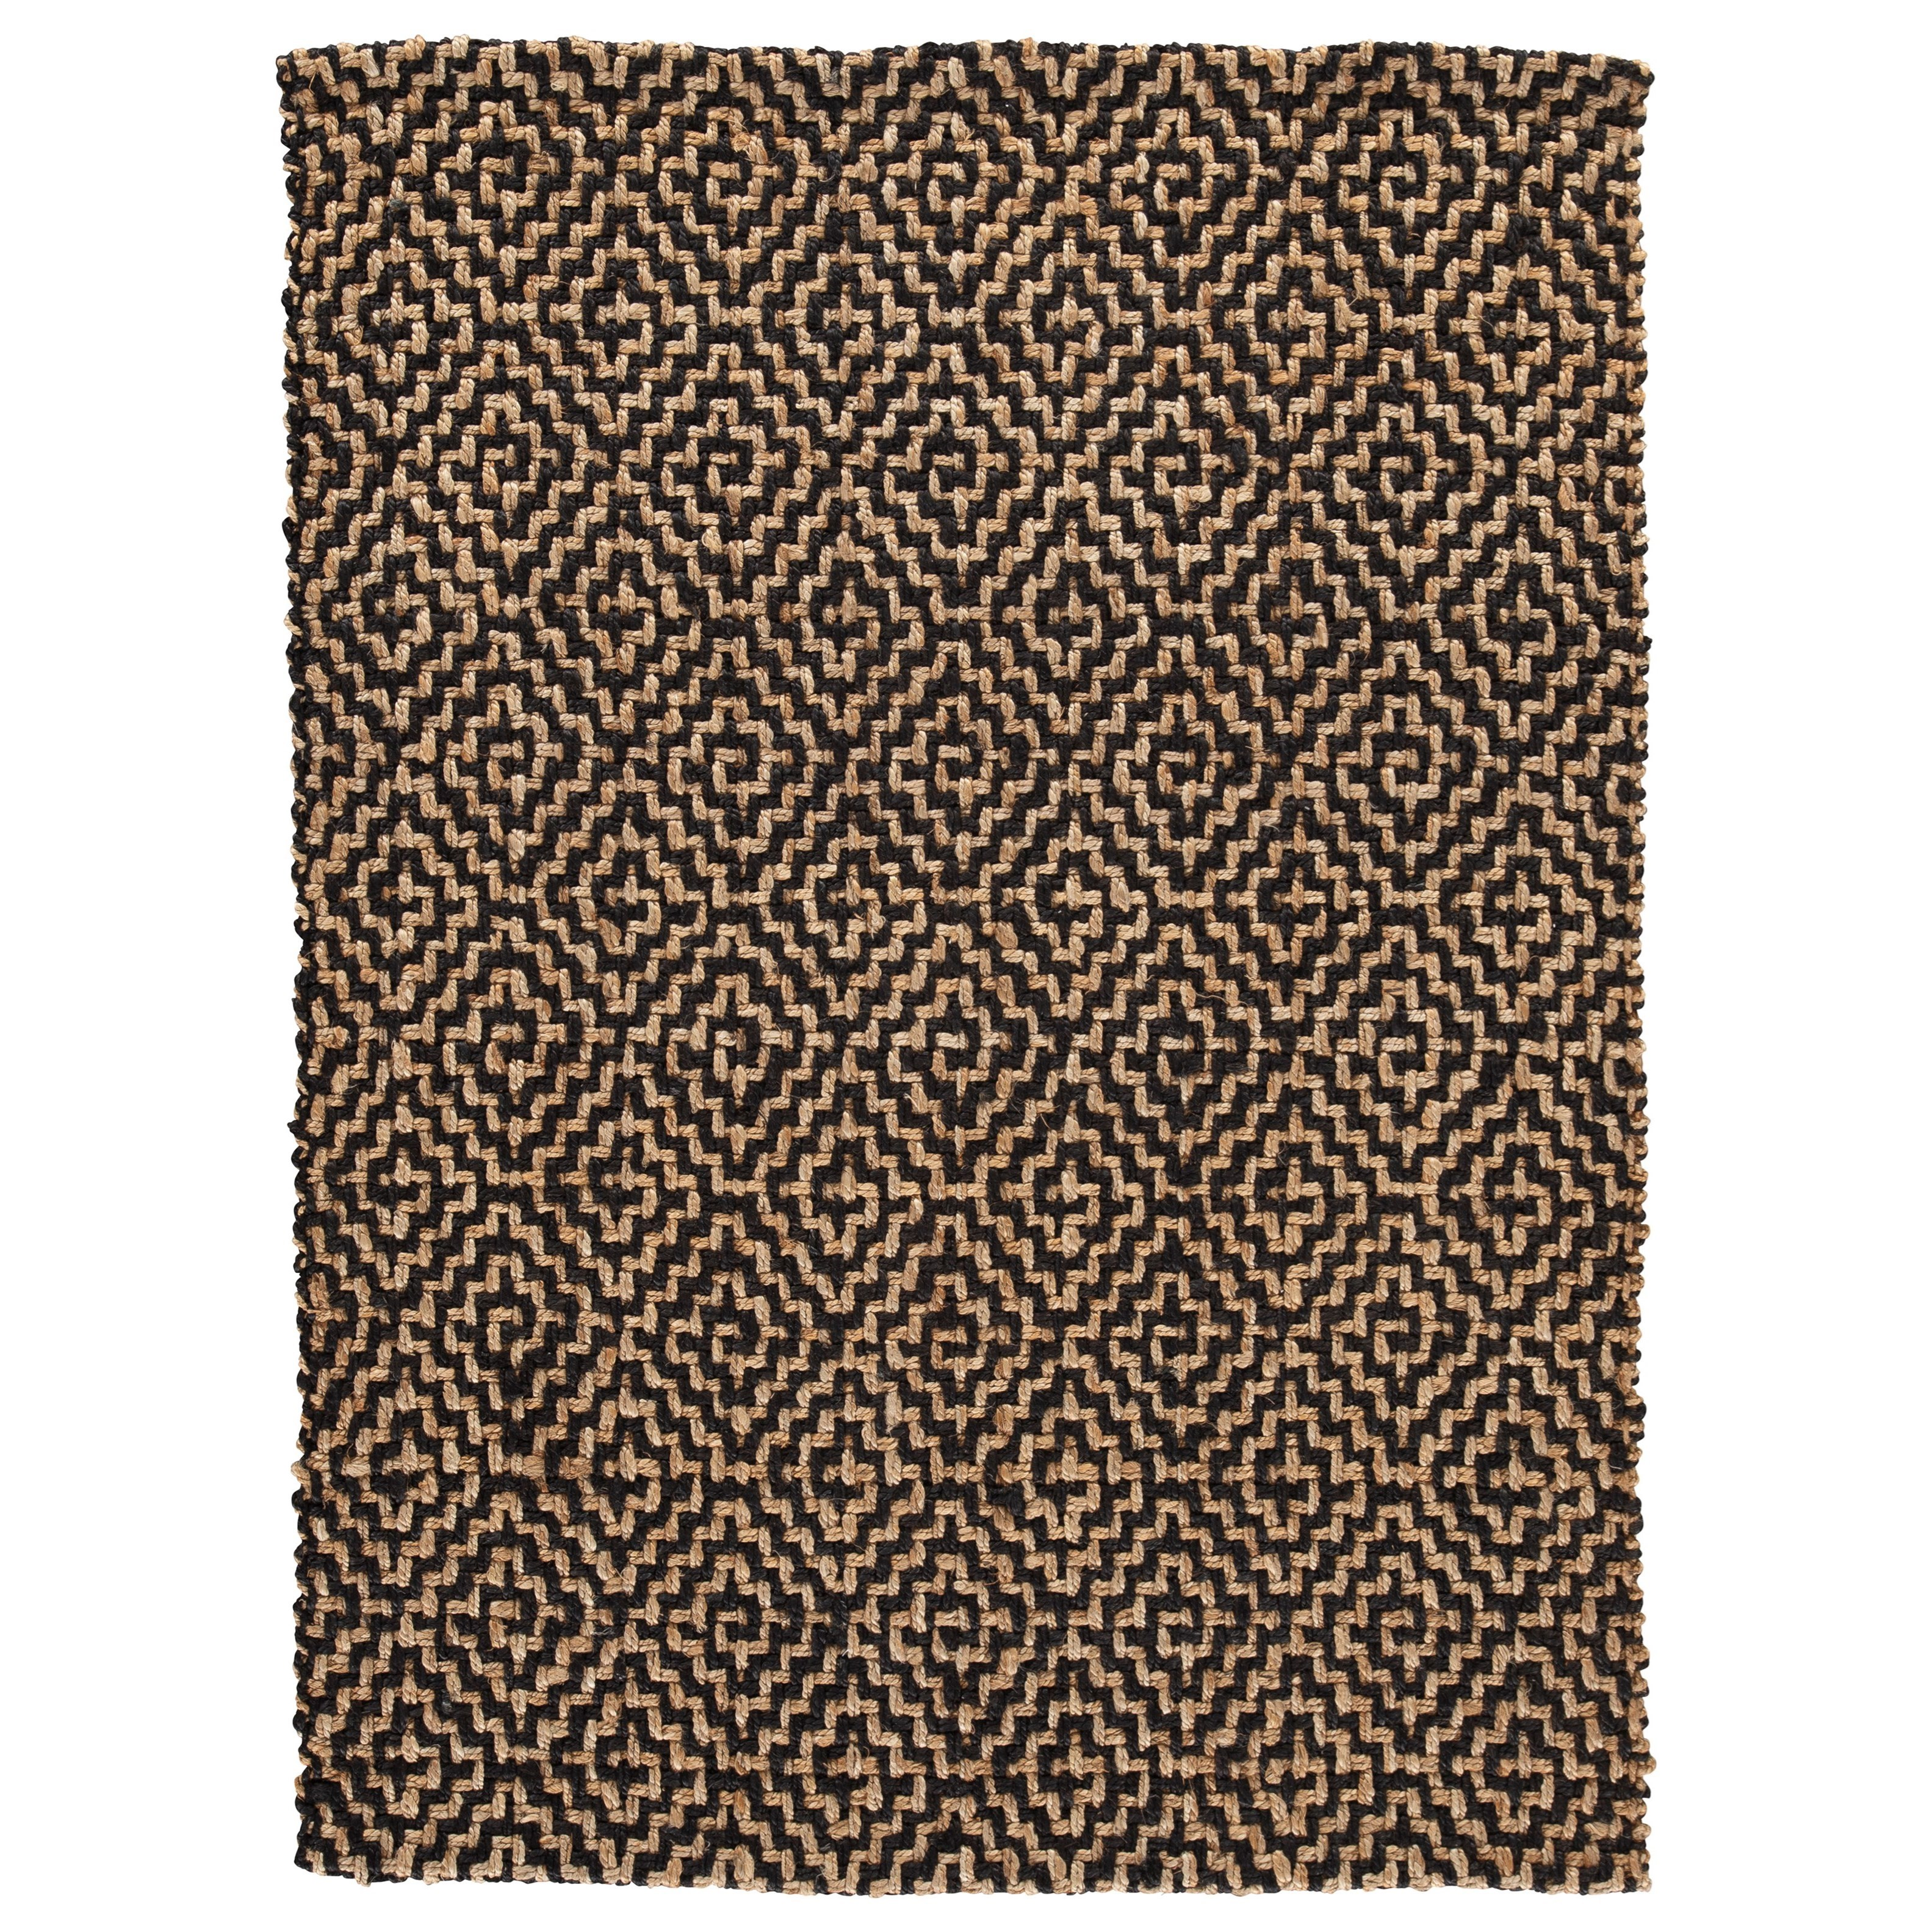 Casual Area Rugs Broox Natural/Black Medium Rug by Signature at Walker's Furniture